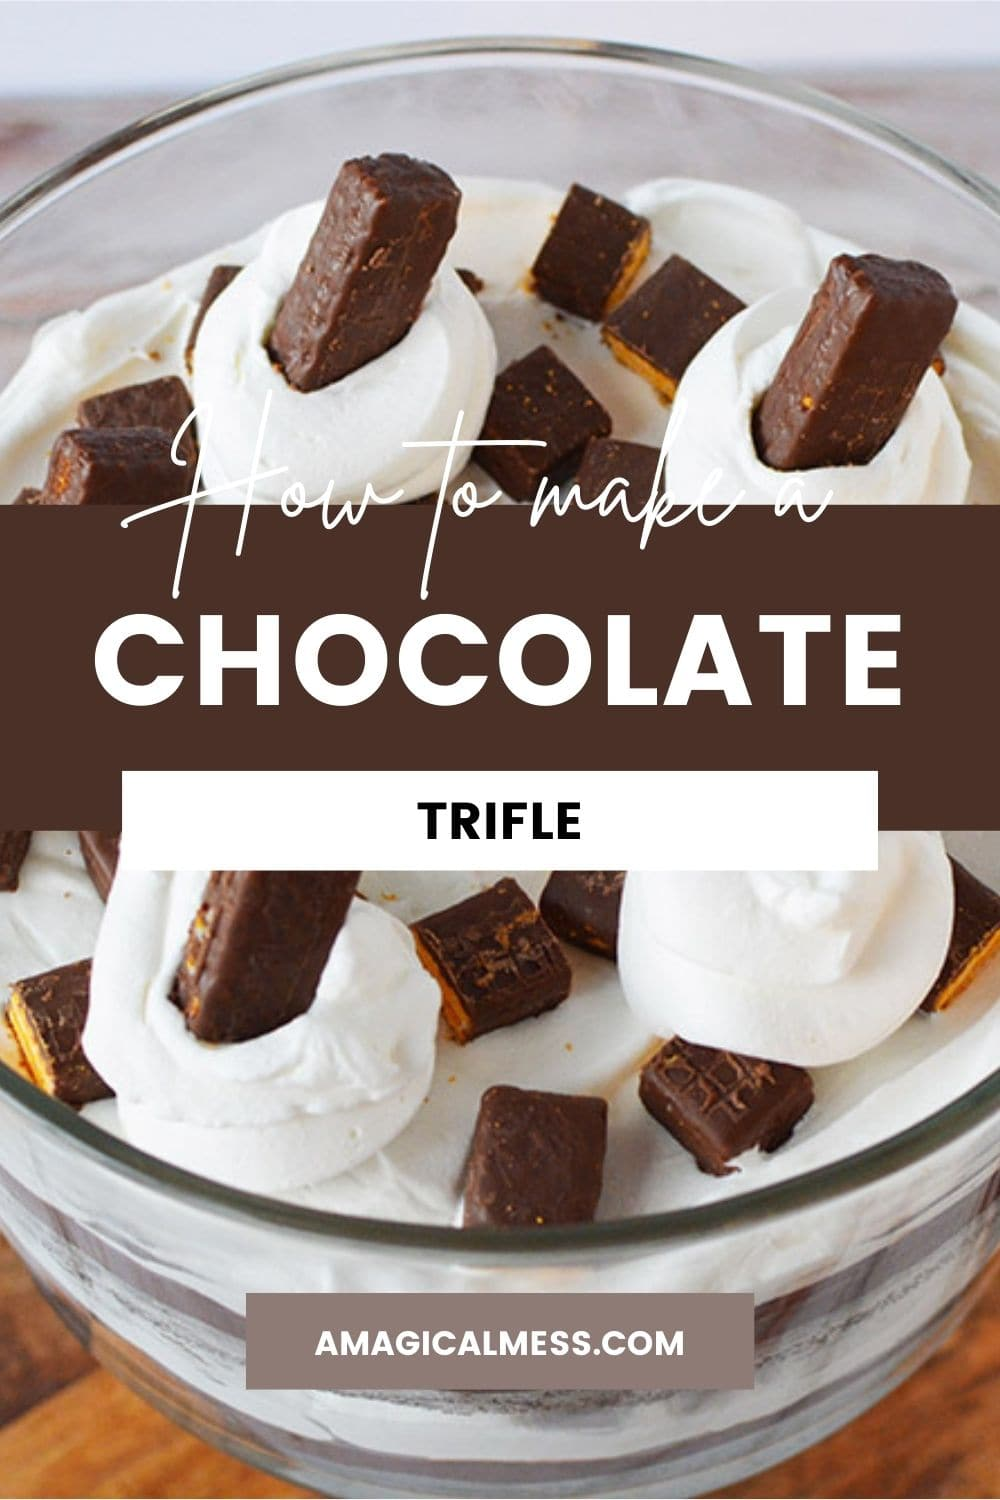 Fudge stick cookies in whipped cream topping a chocolate cake trifle